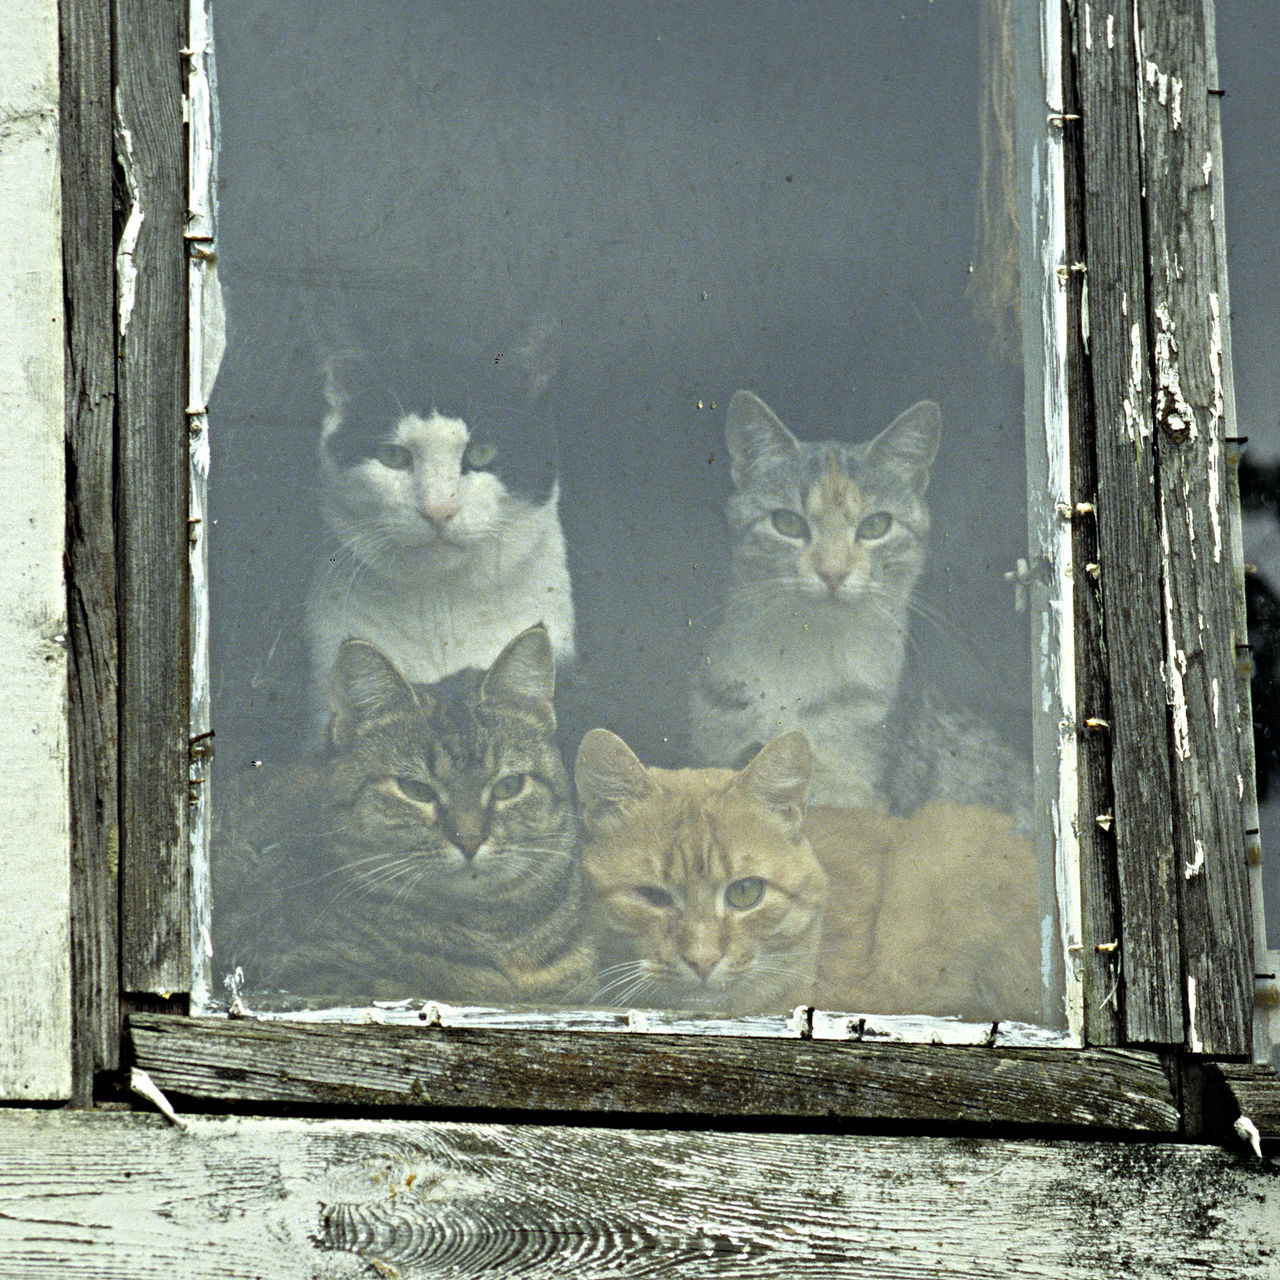 Animal Themes Cats Life Curiosity Day Domestic Animals Domestic Cat Four Cats In A Window No People Pets The Time Is Passing By Togetherness Who Is Coming?